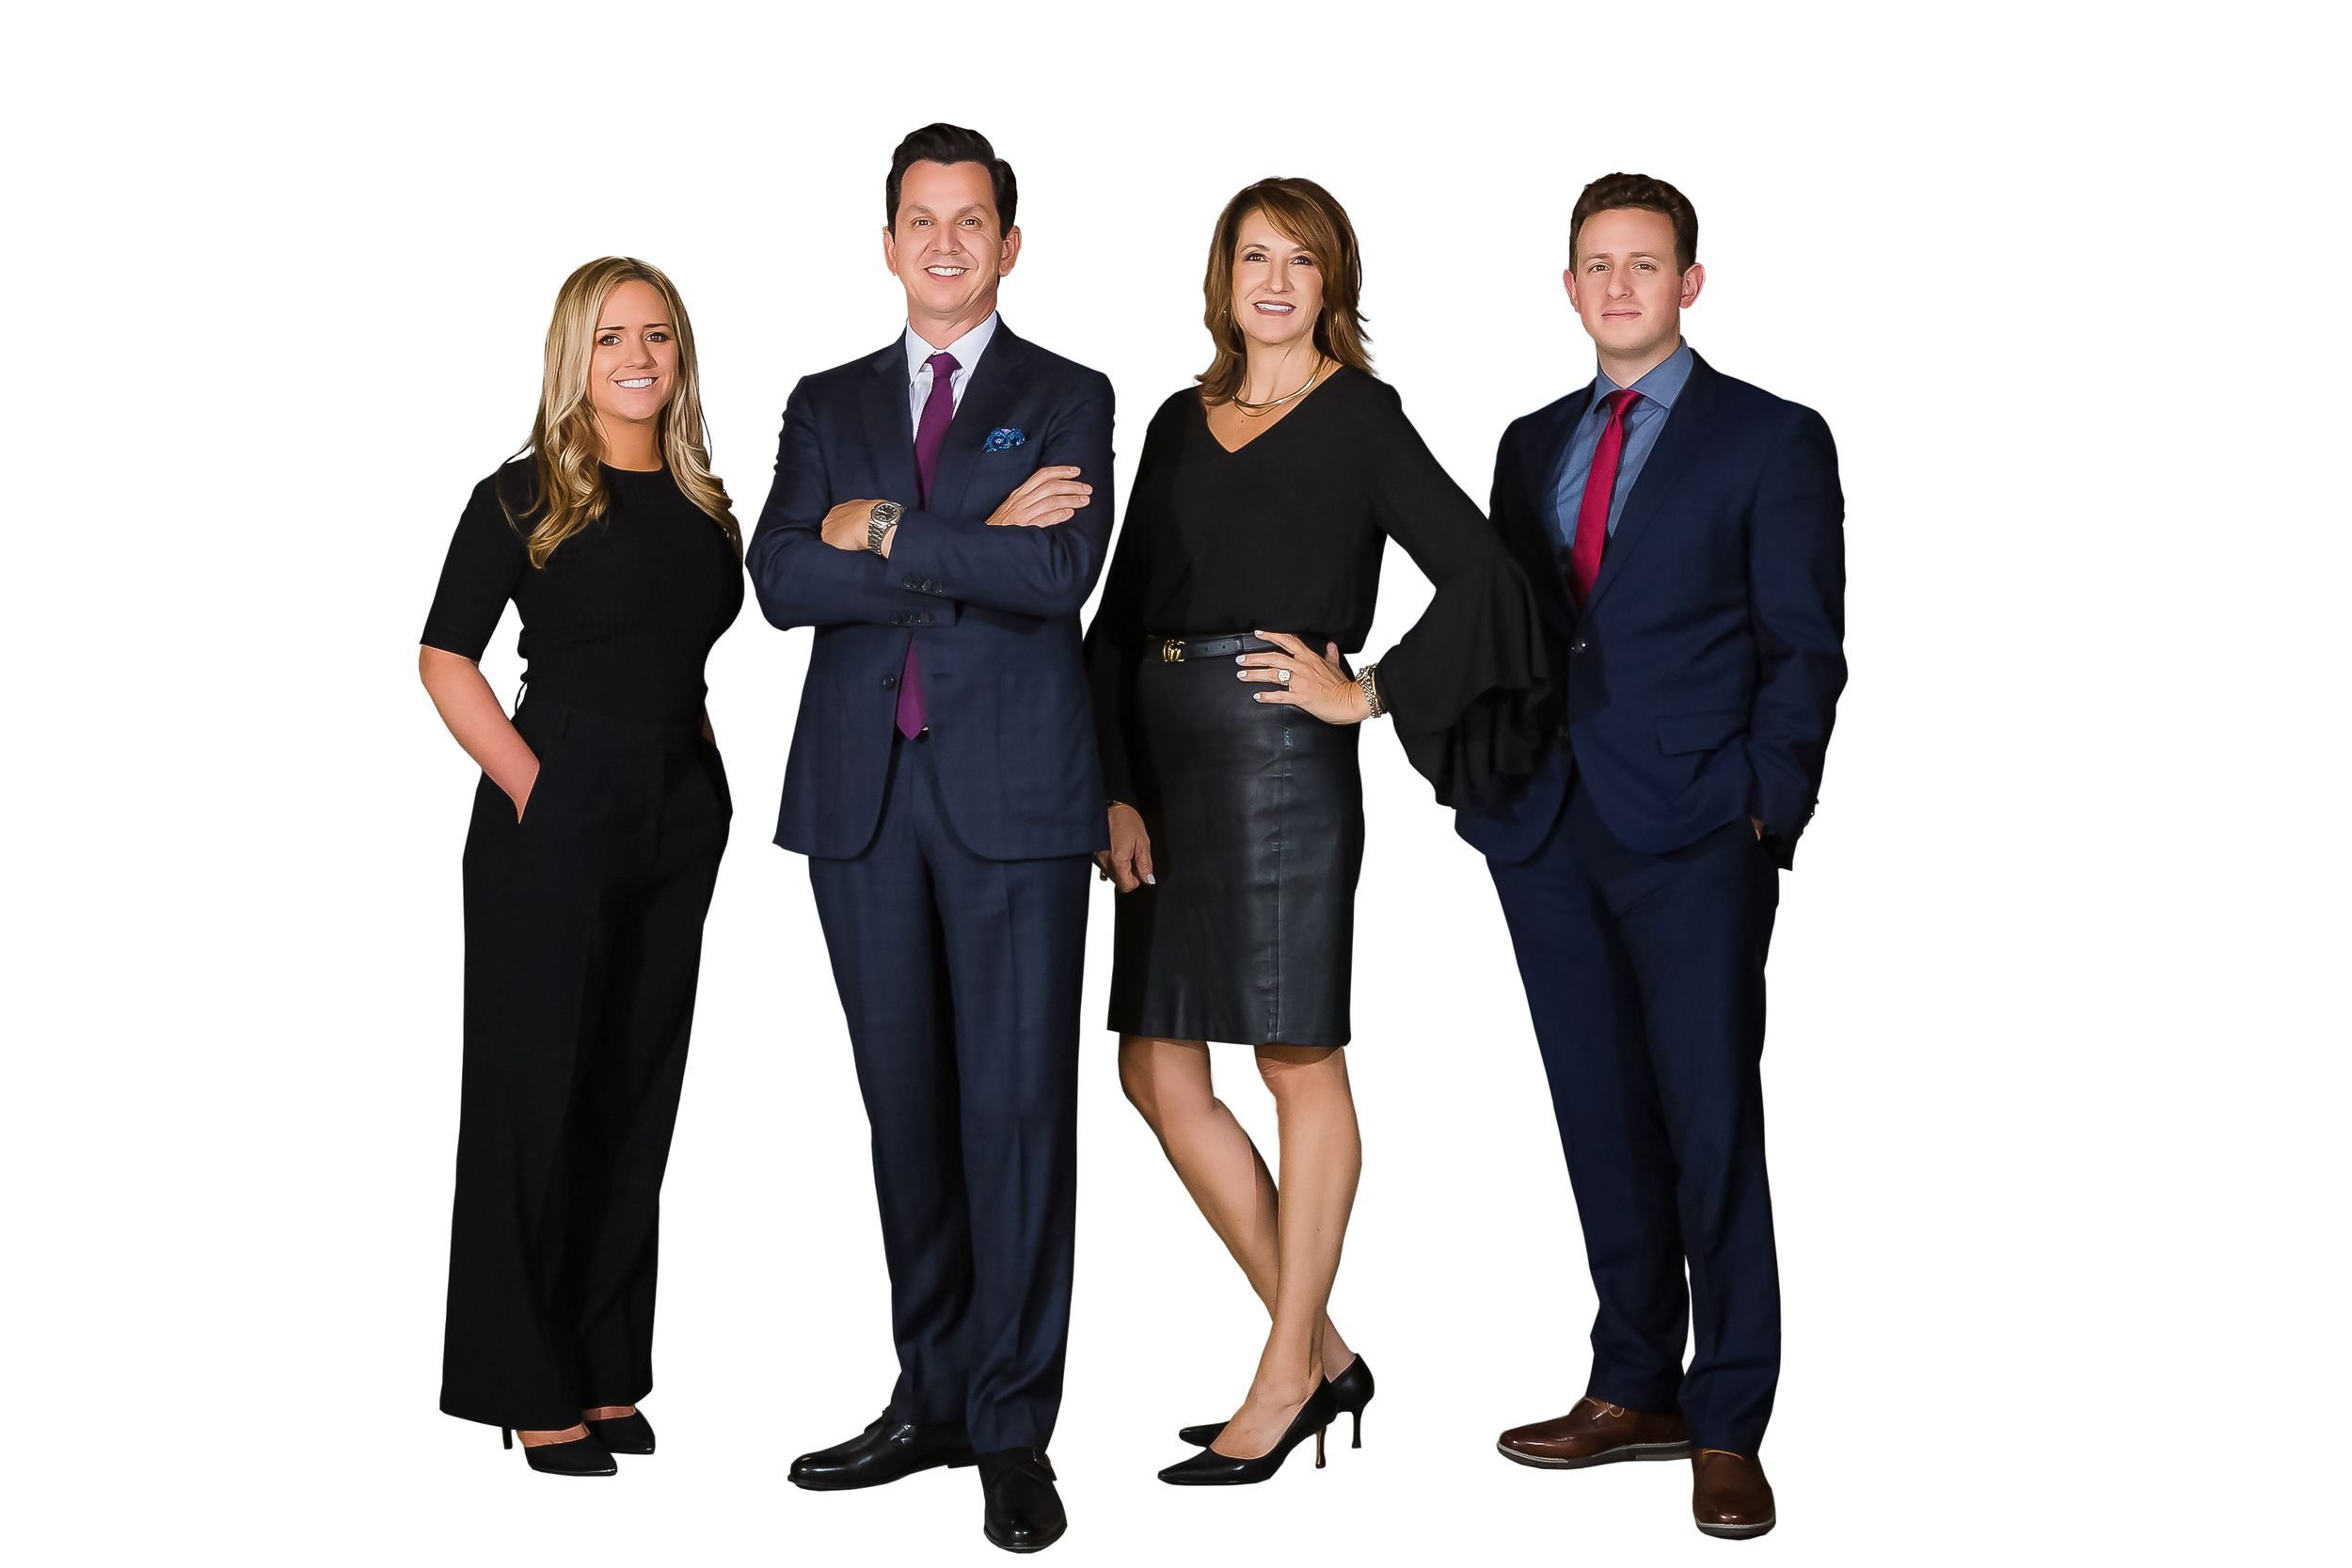 Anita_Barcsa_Photography_Canas_Group_Real_Estate_Headshots_Potraits_Team_Photo_Burlingame, California